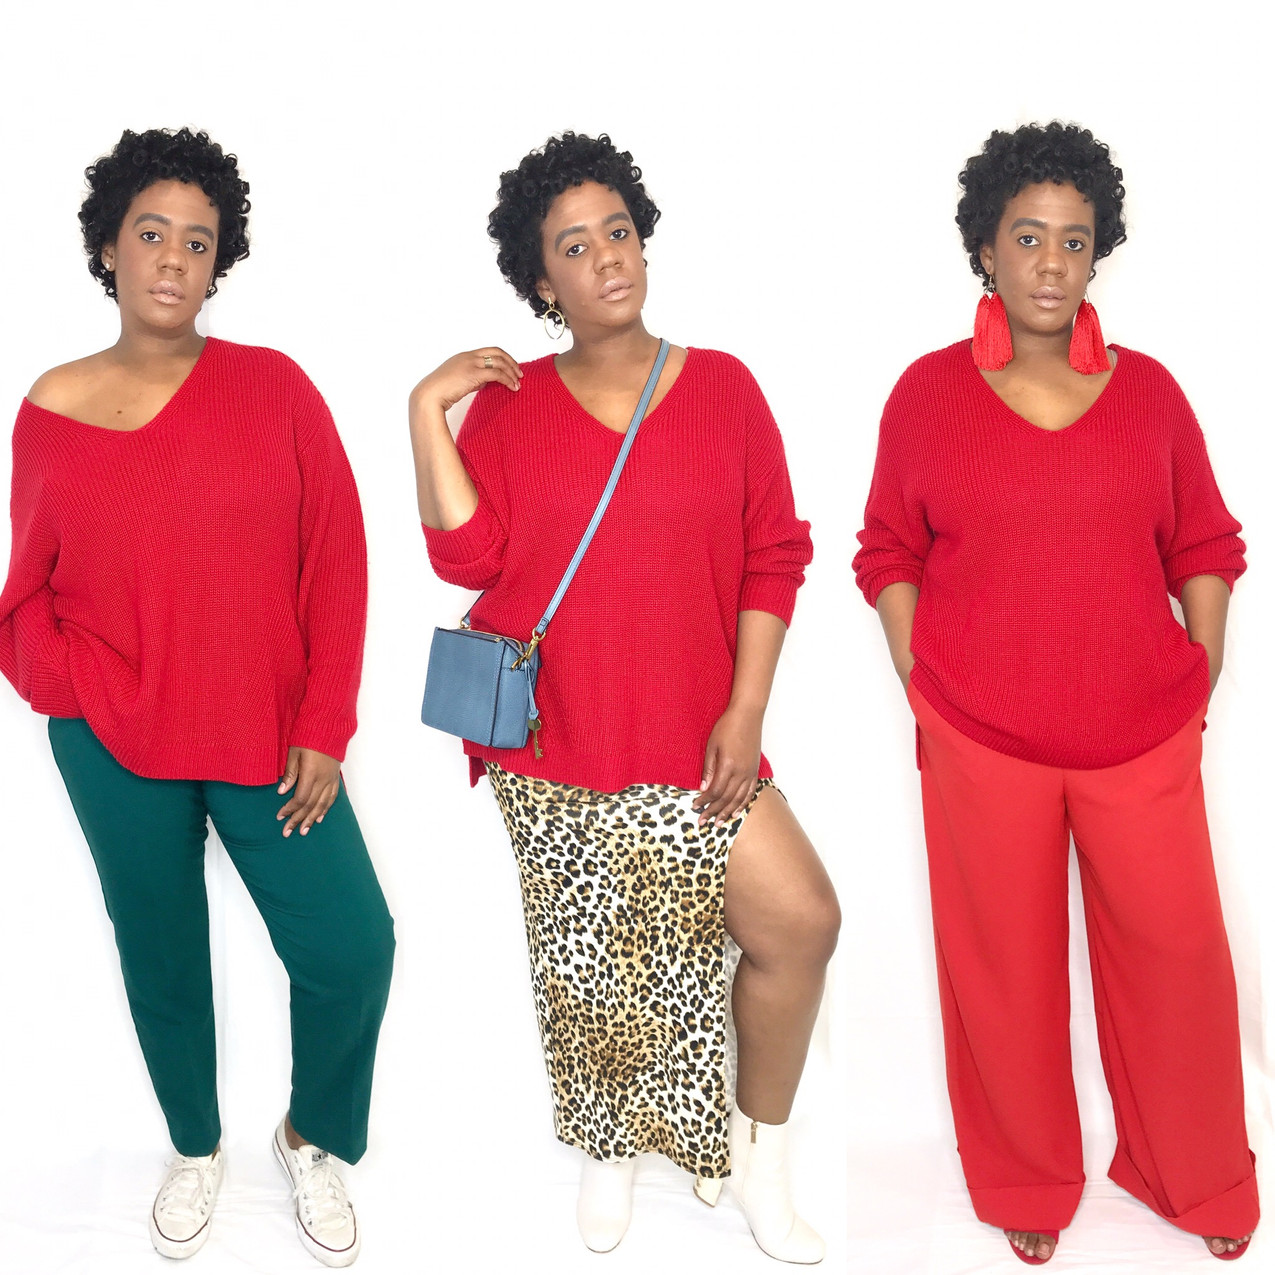 How to Style: The Red Sweater